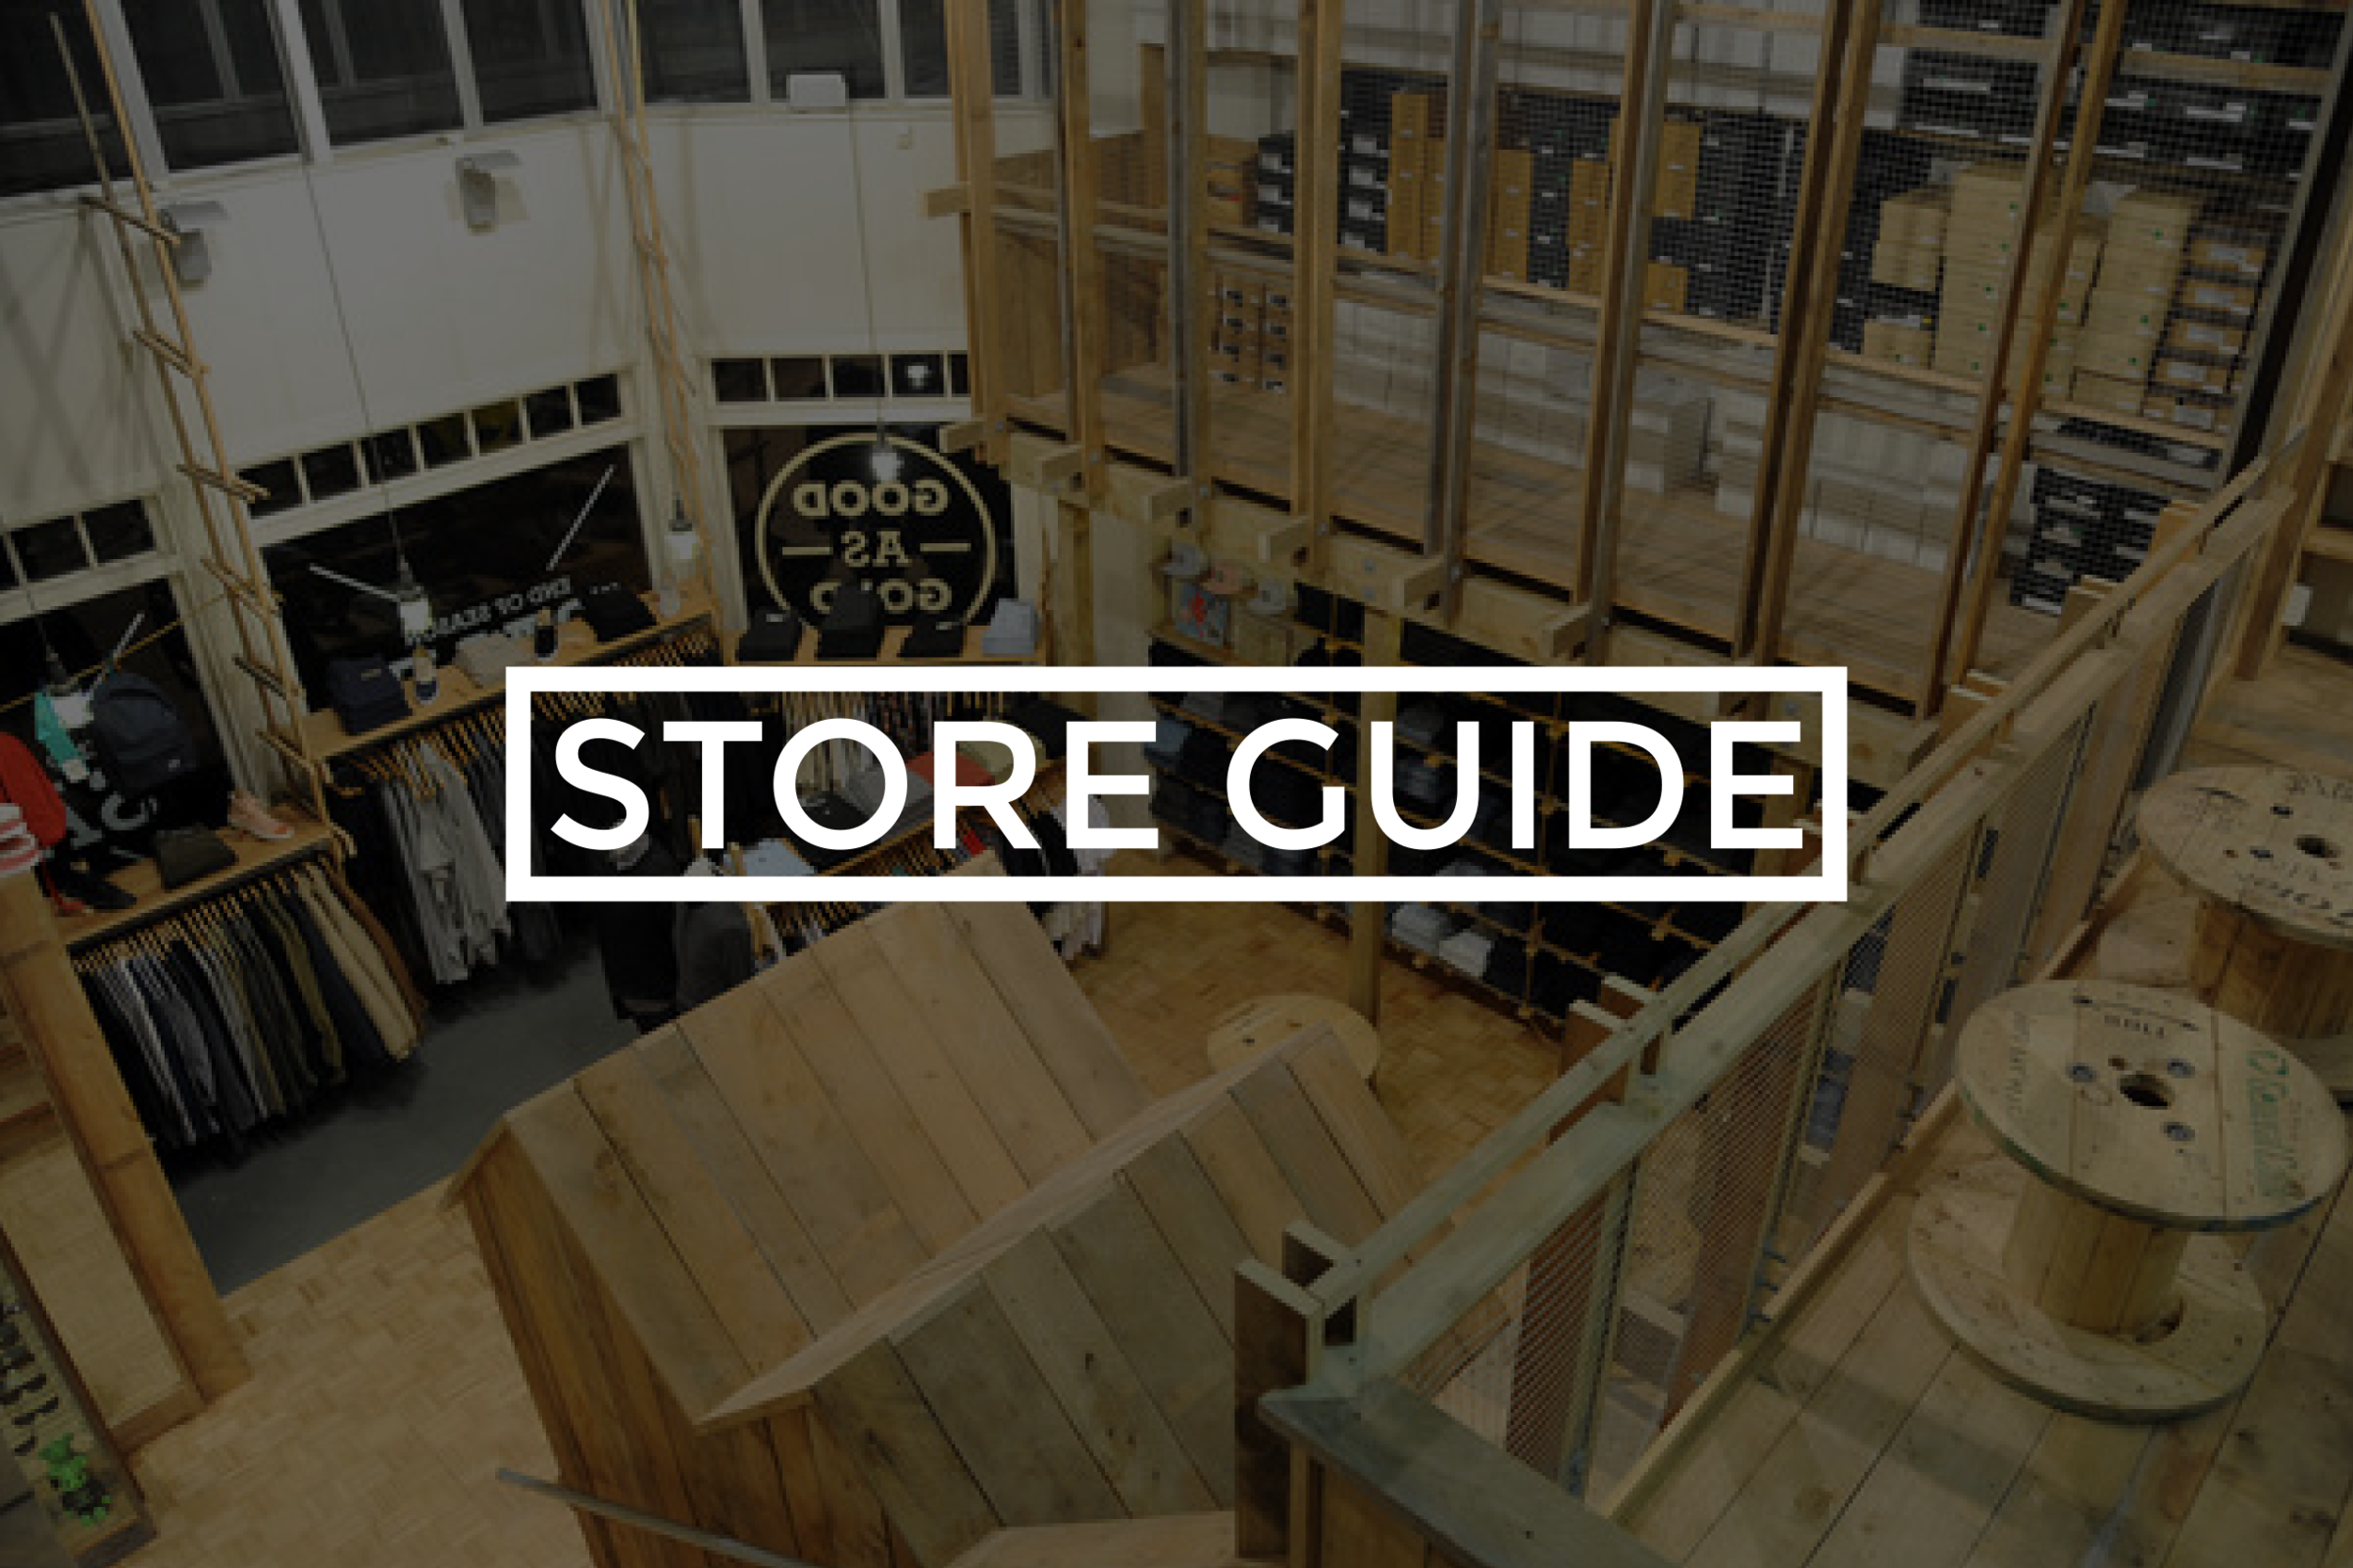 store guide.png